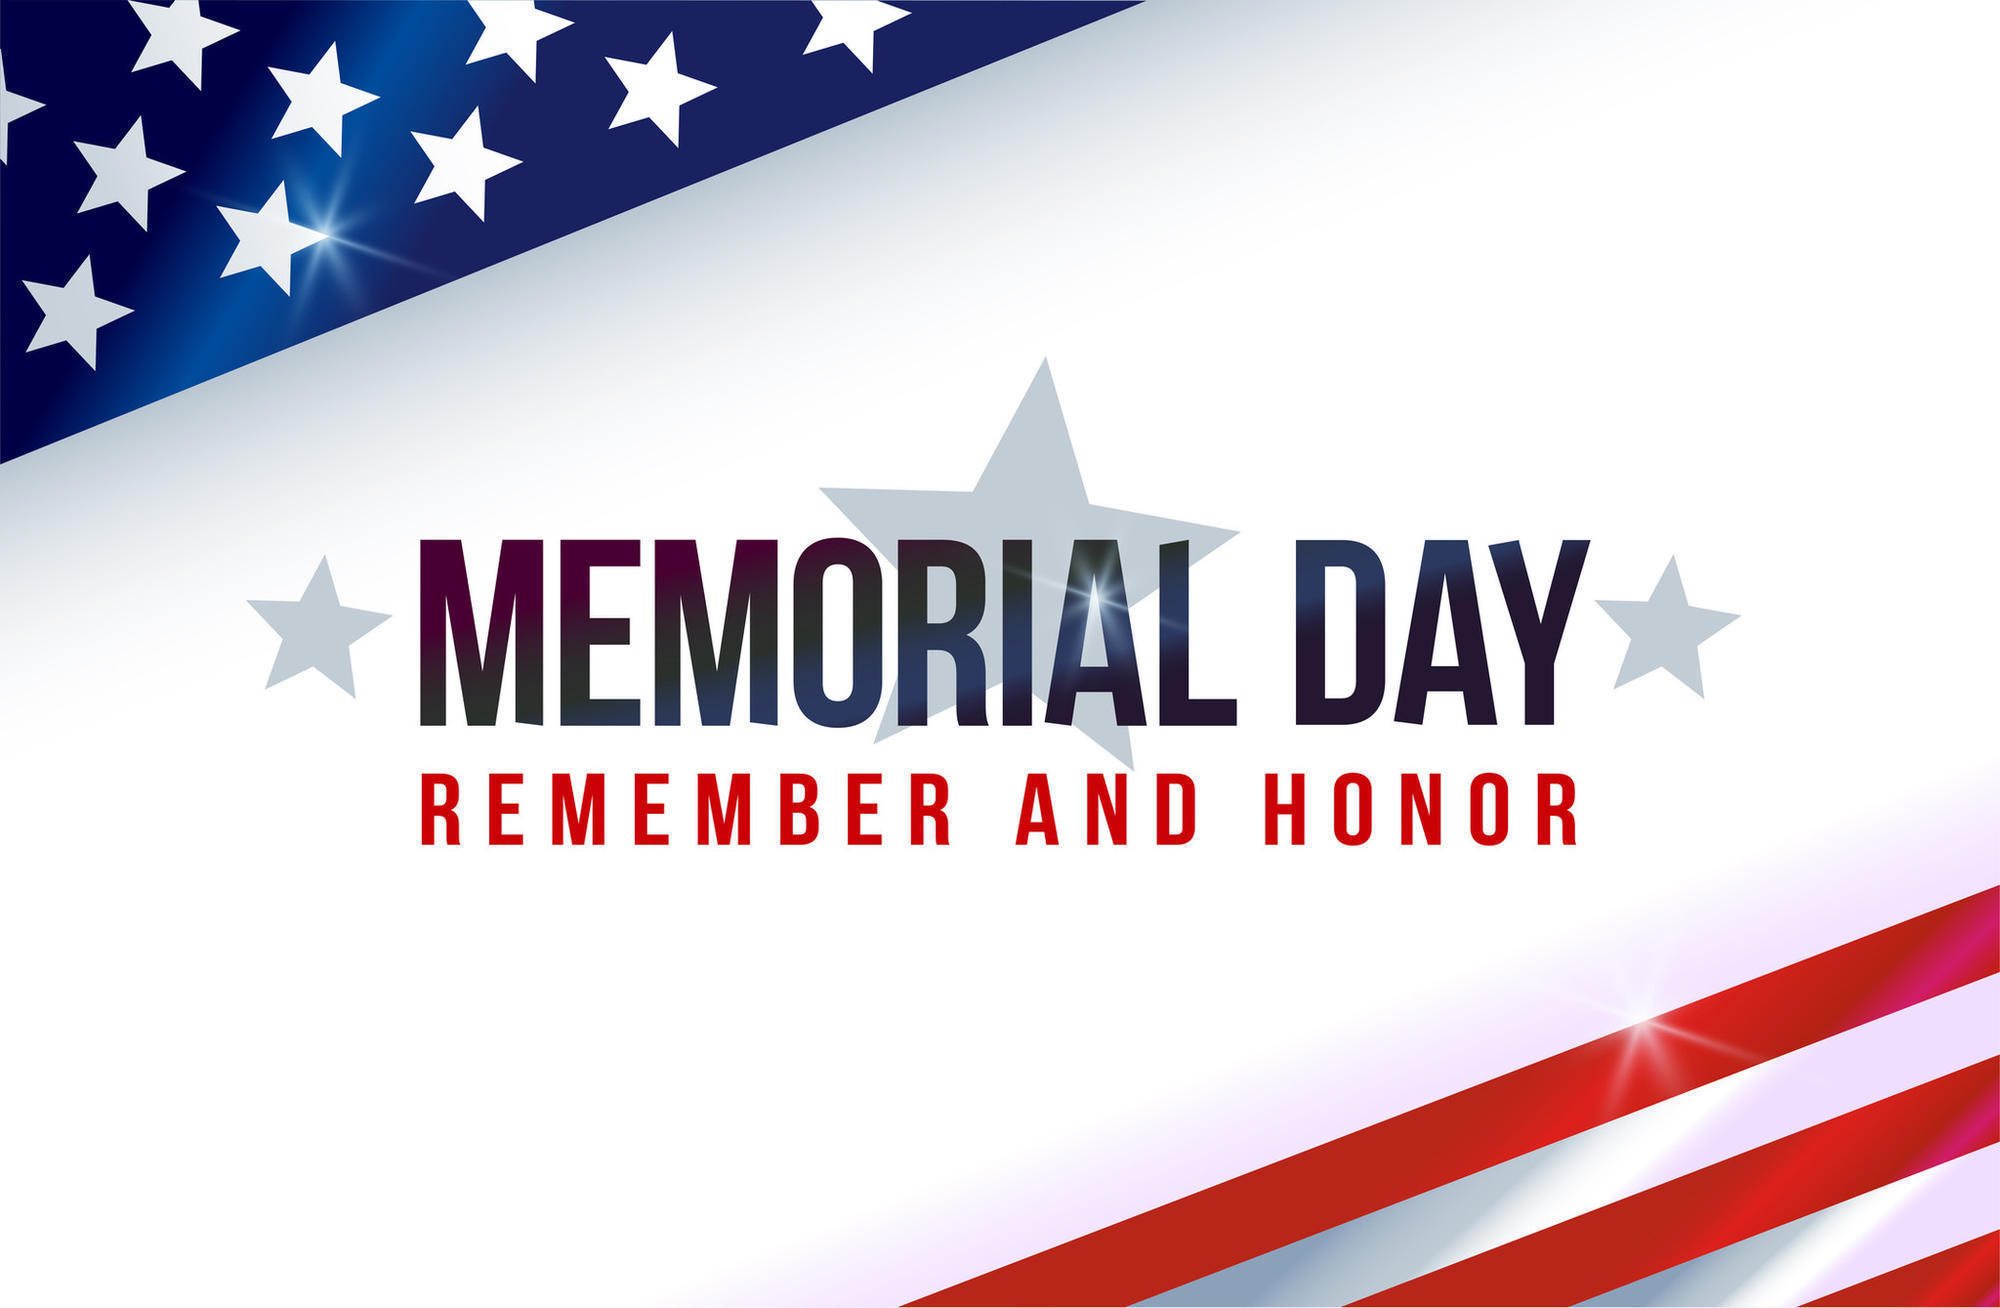 Land Of The Free 35 Memorial Day Freebies And Coupons For Military Heroes Civilians